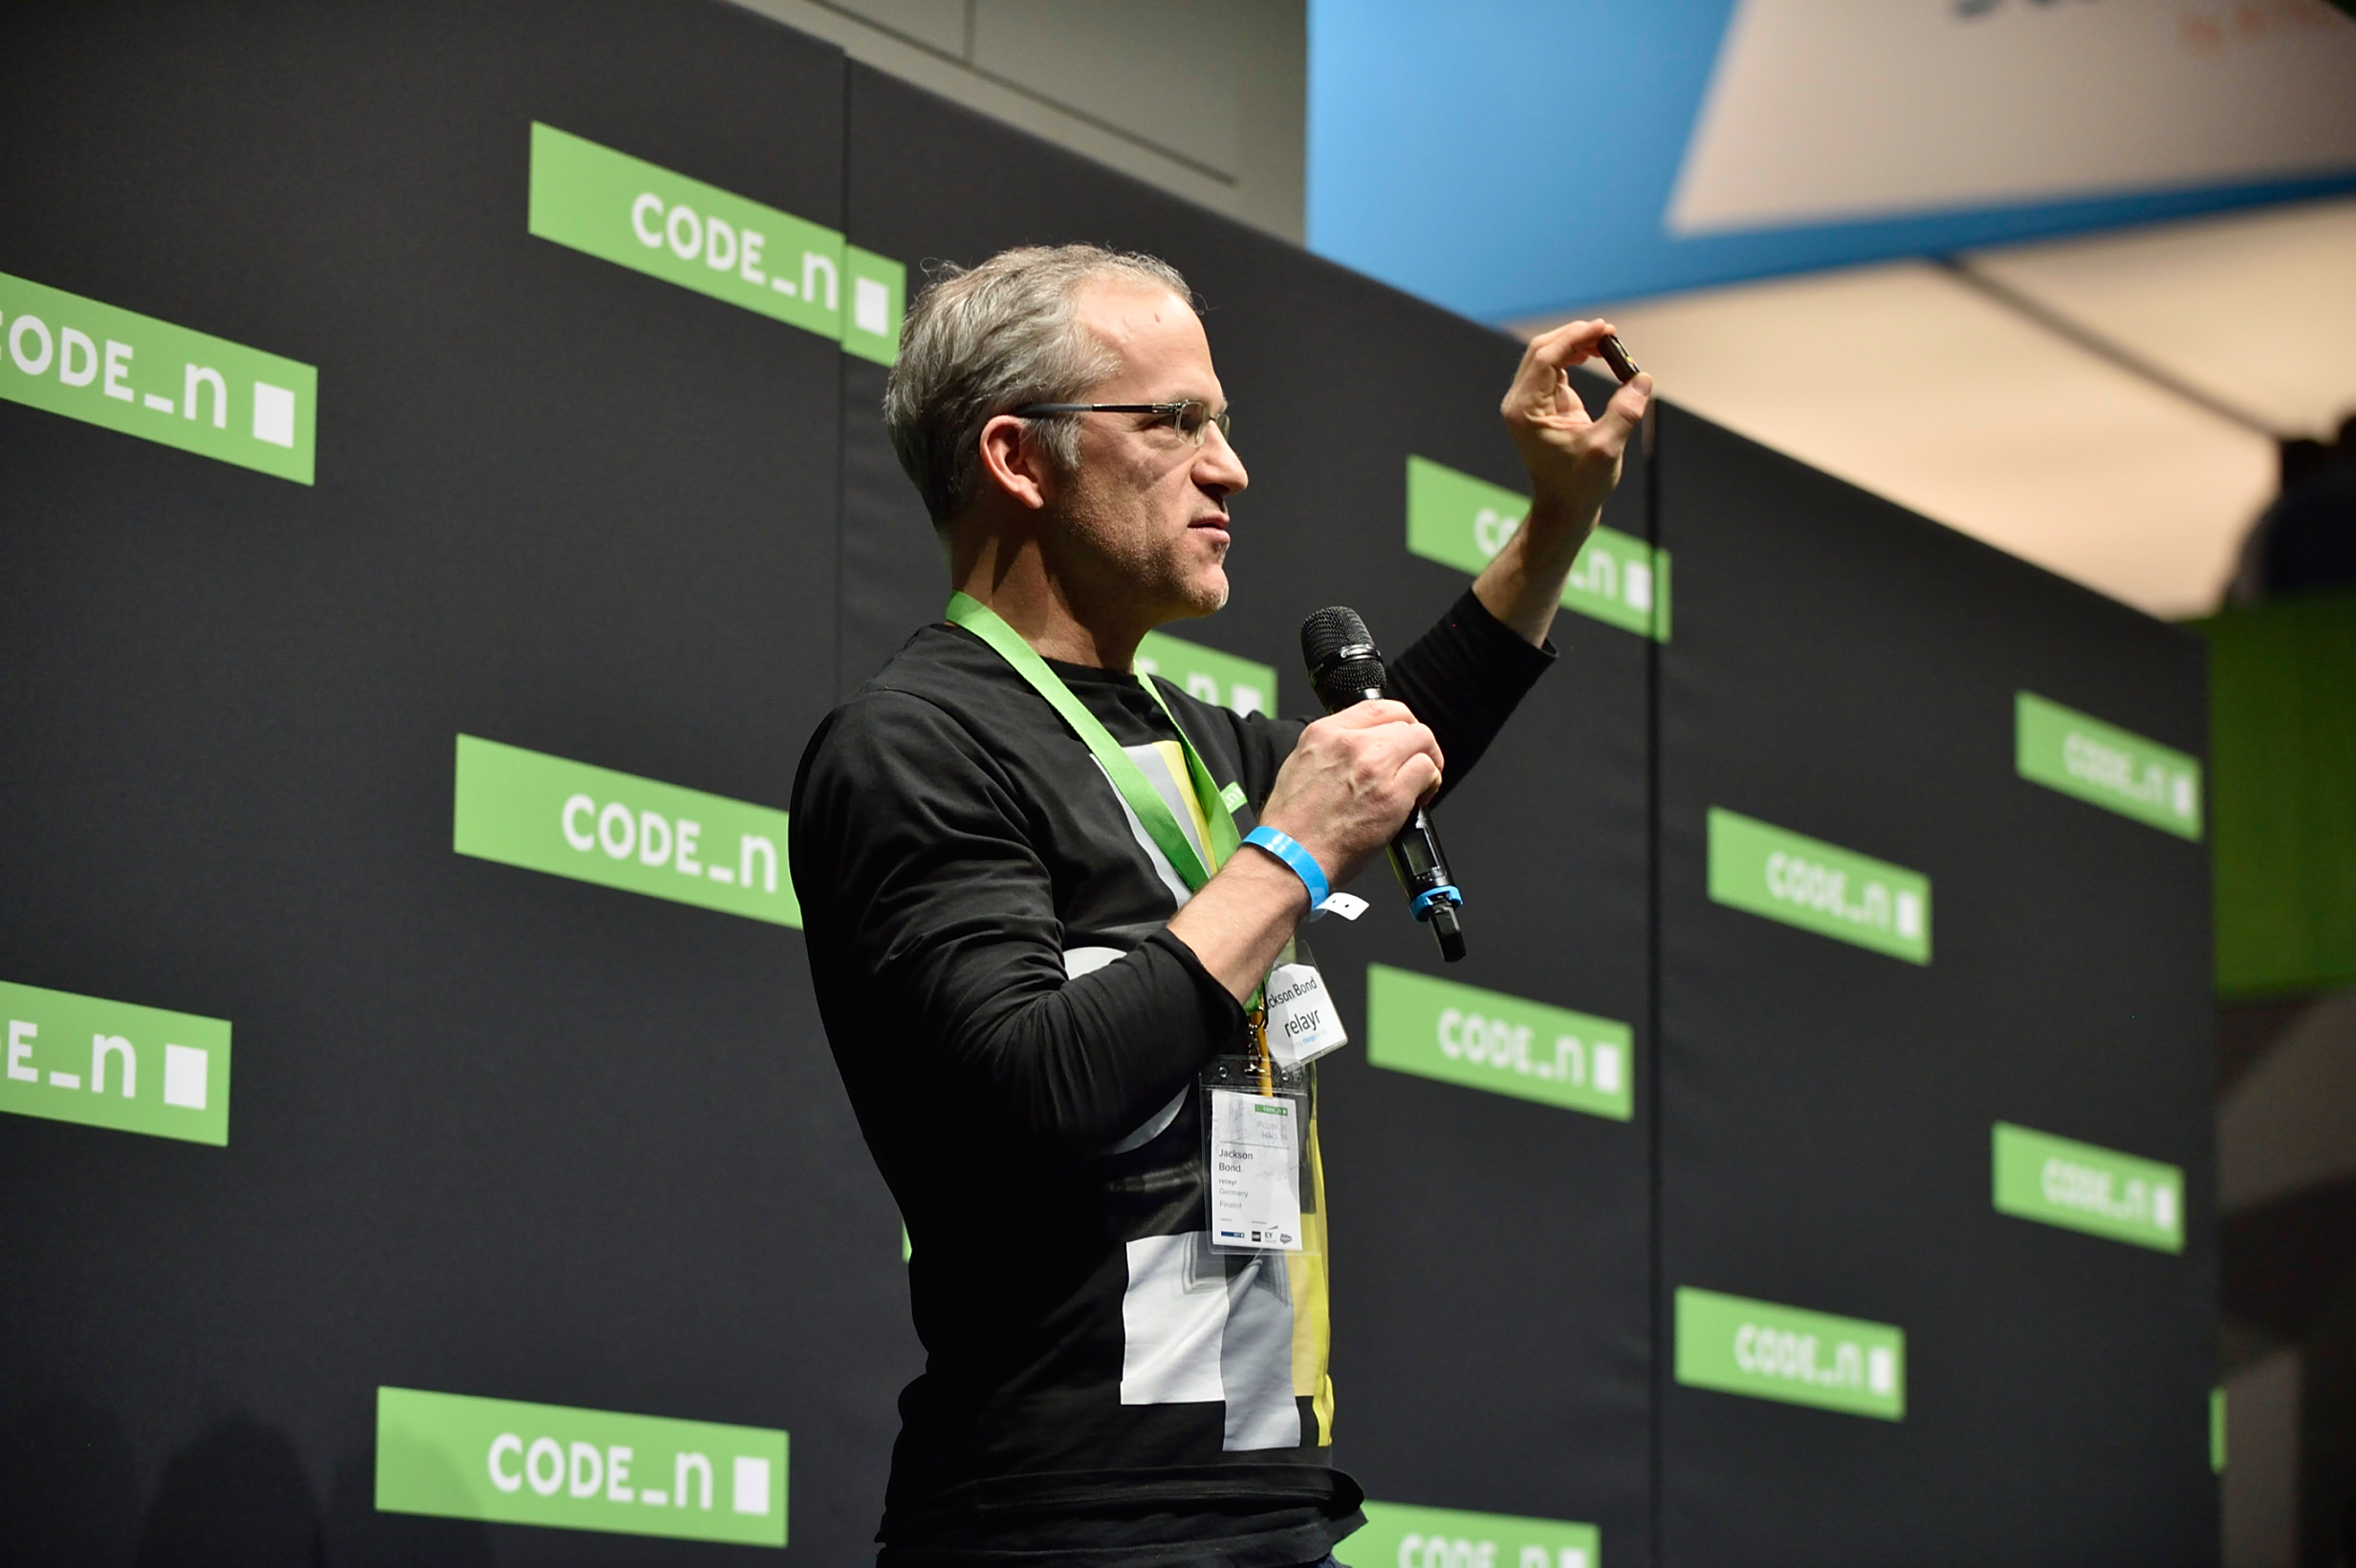 Relayr pitches Code_n at CeBIT